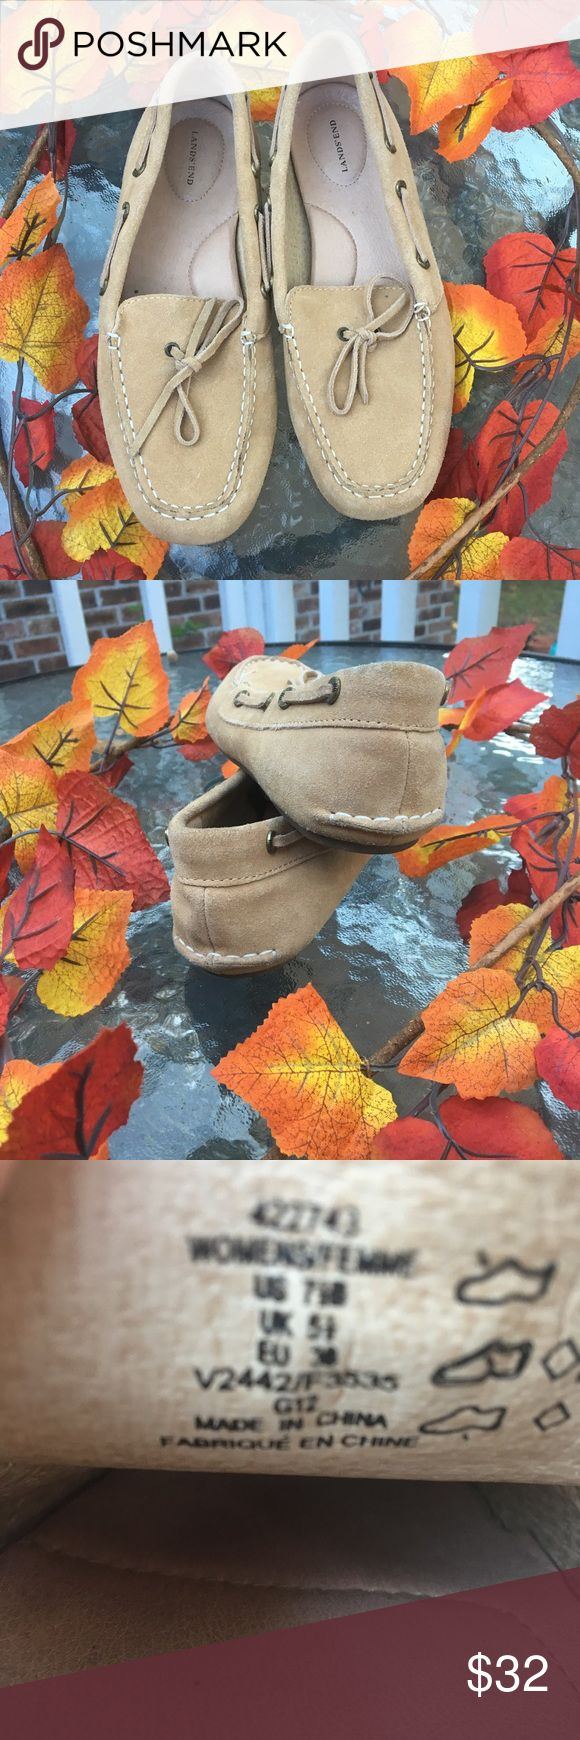 🍁🍂LANDS END LOAFERS size 7 1/2 EUC🍁🍂 🌻Quality,Durability, & a Classic...Lands End Loafers. Worn with an insole to keep footbed clean. EUC🌻 Lands' End Shoes Flats & Loafers